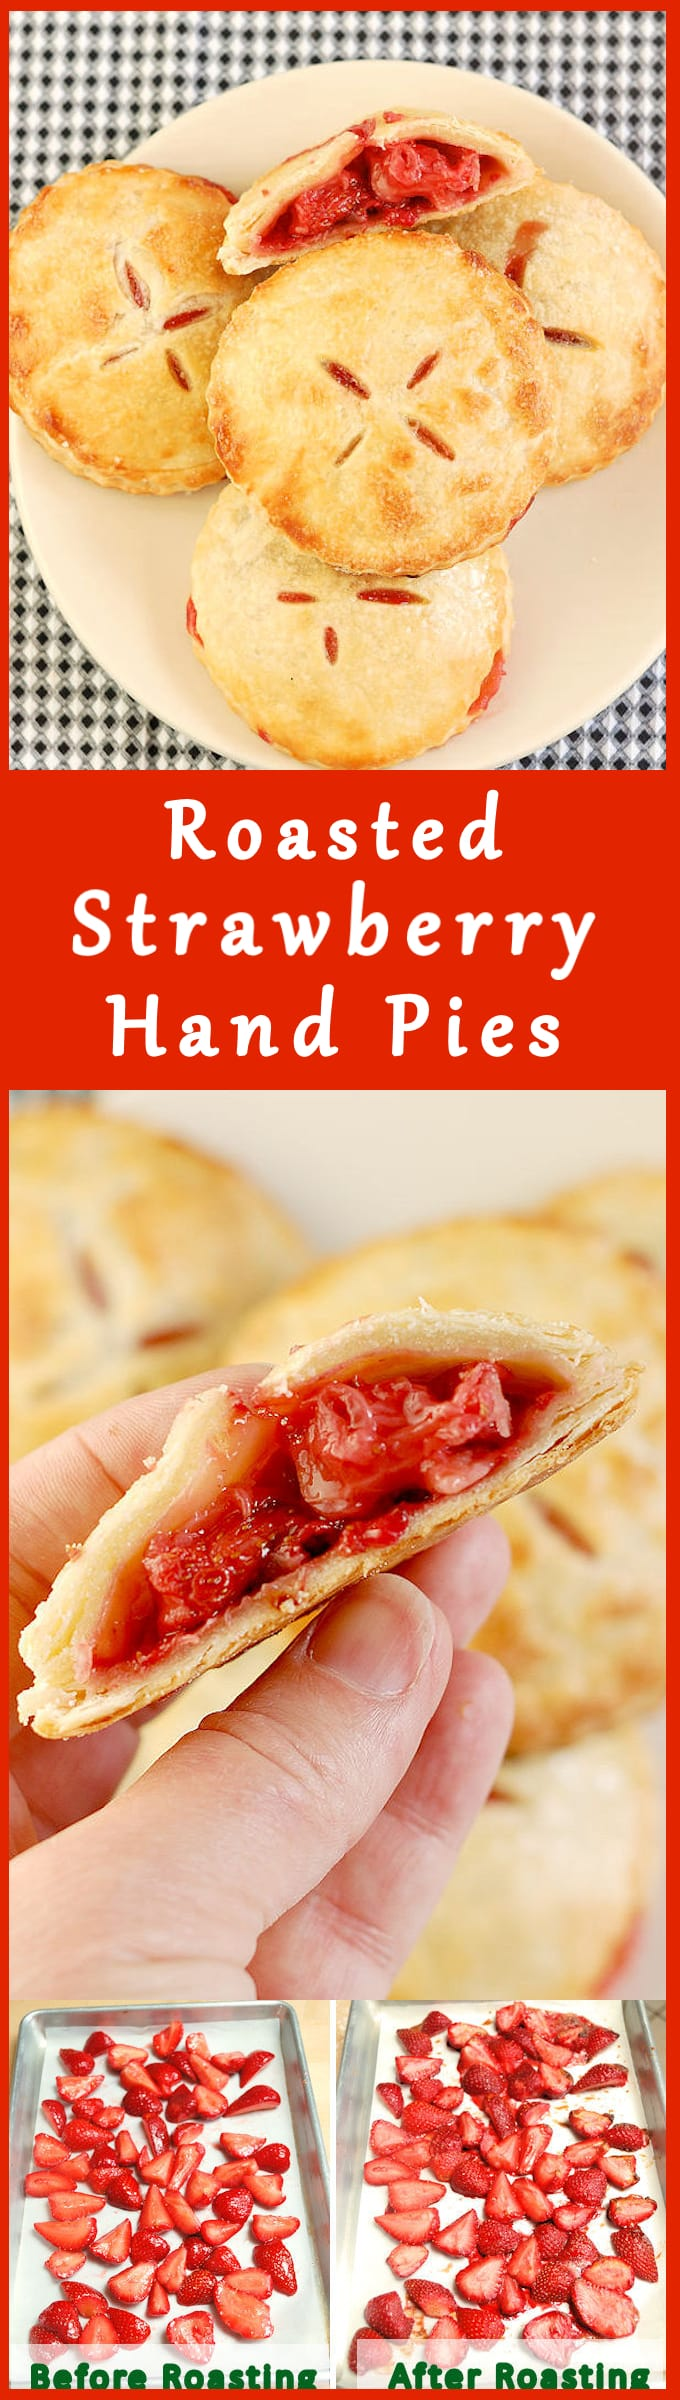 Roasted Strawberry Hand Pies are perfect when you're having finger foods for #SundaySupper